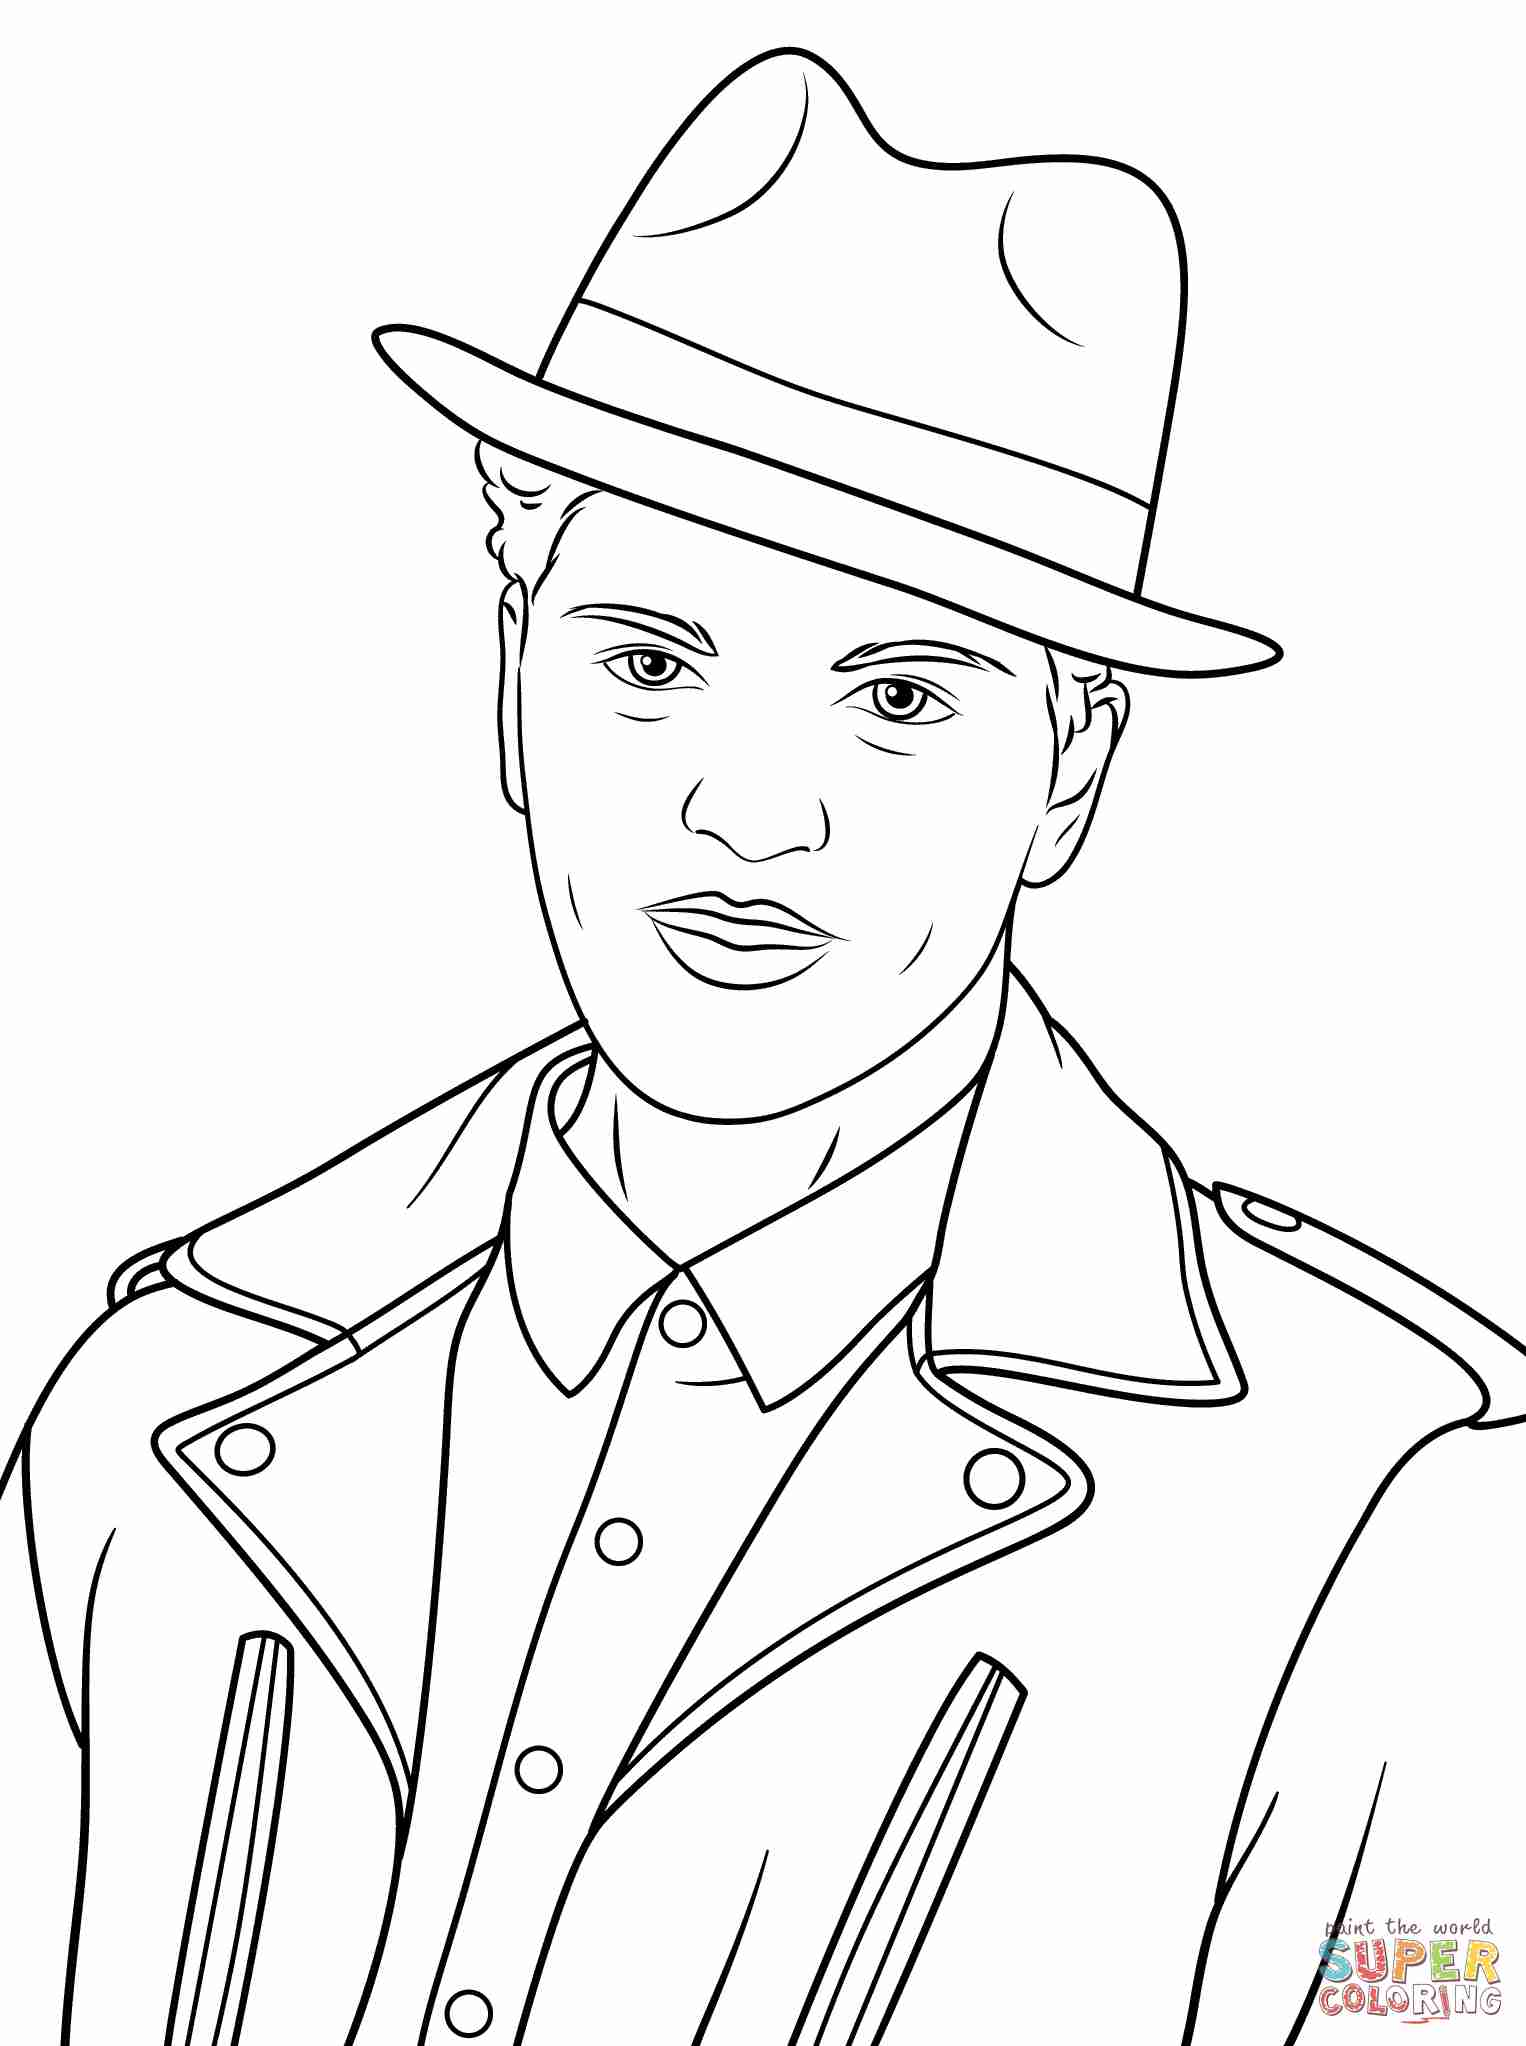 Mars Coloring Pages At Getcolorings